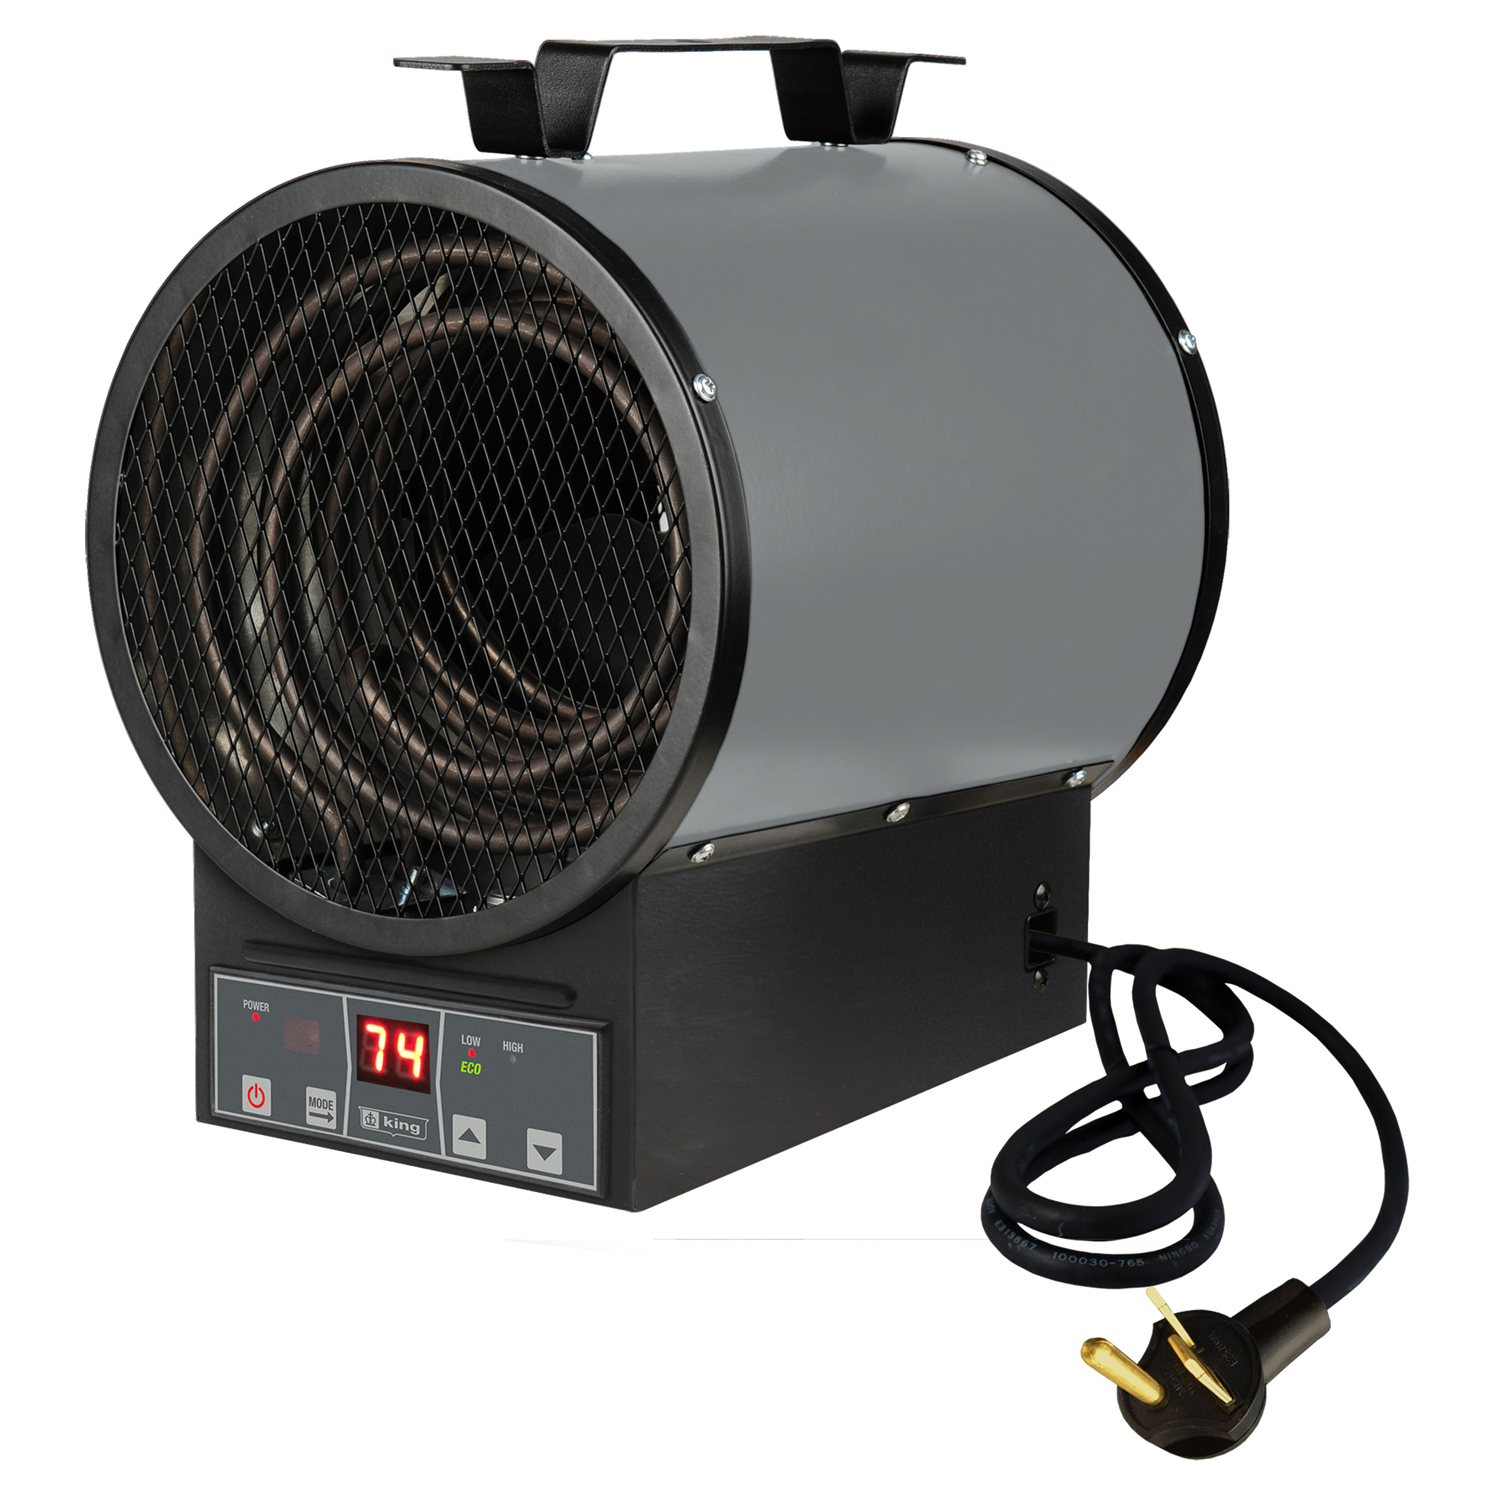 King Electric 240 Volt 4800 Watt Portable Garage Heater With Electronic Control Remote and